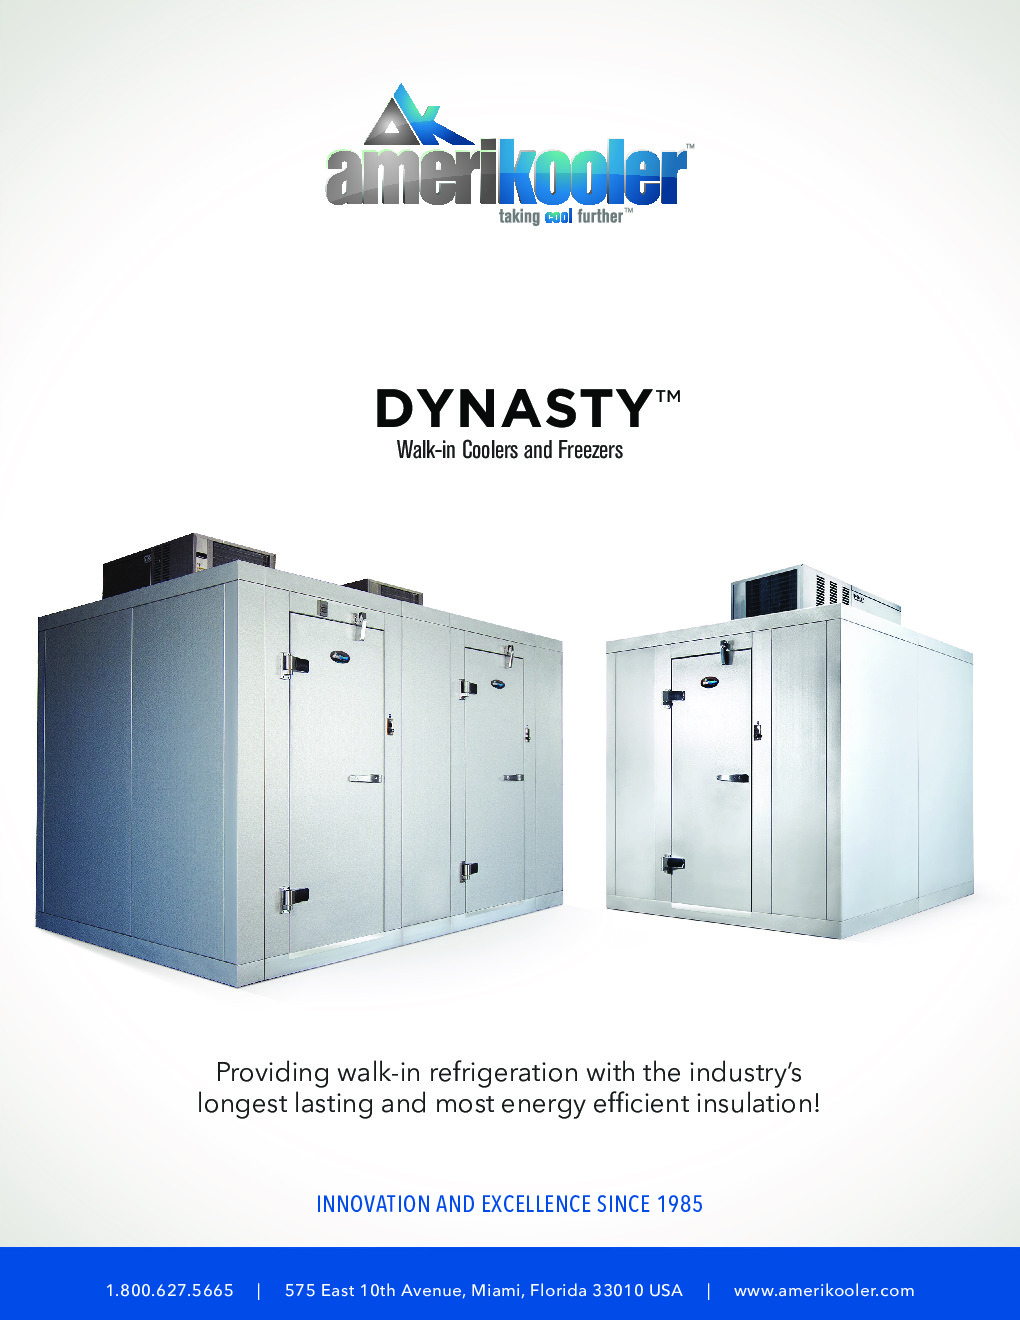 AmeriKooler DW081877F-6/12-SC 8' X 18' Walk-In Cooler, 12' L Cooler with Floor and 6' L Freezer, Self Contained